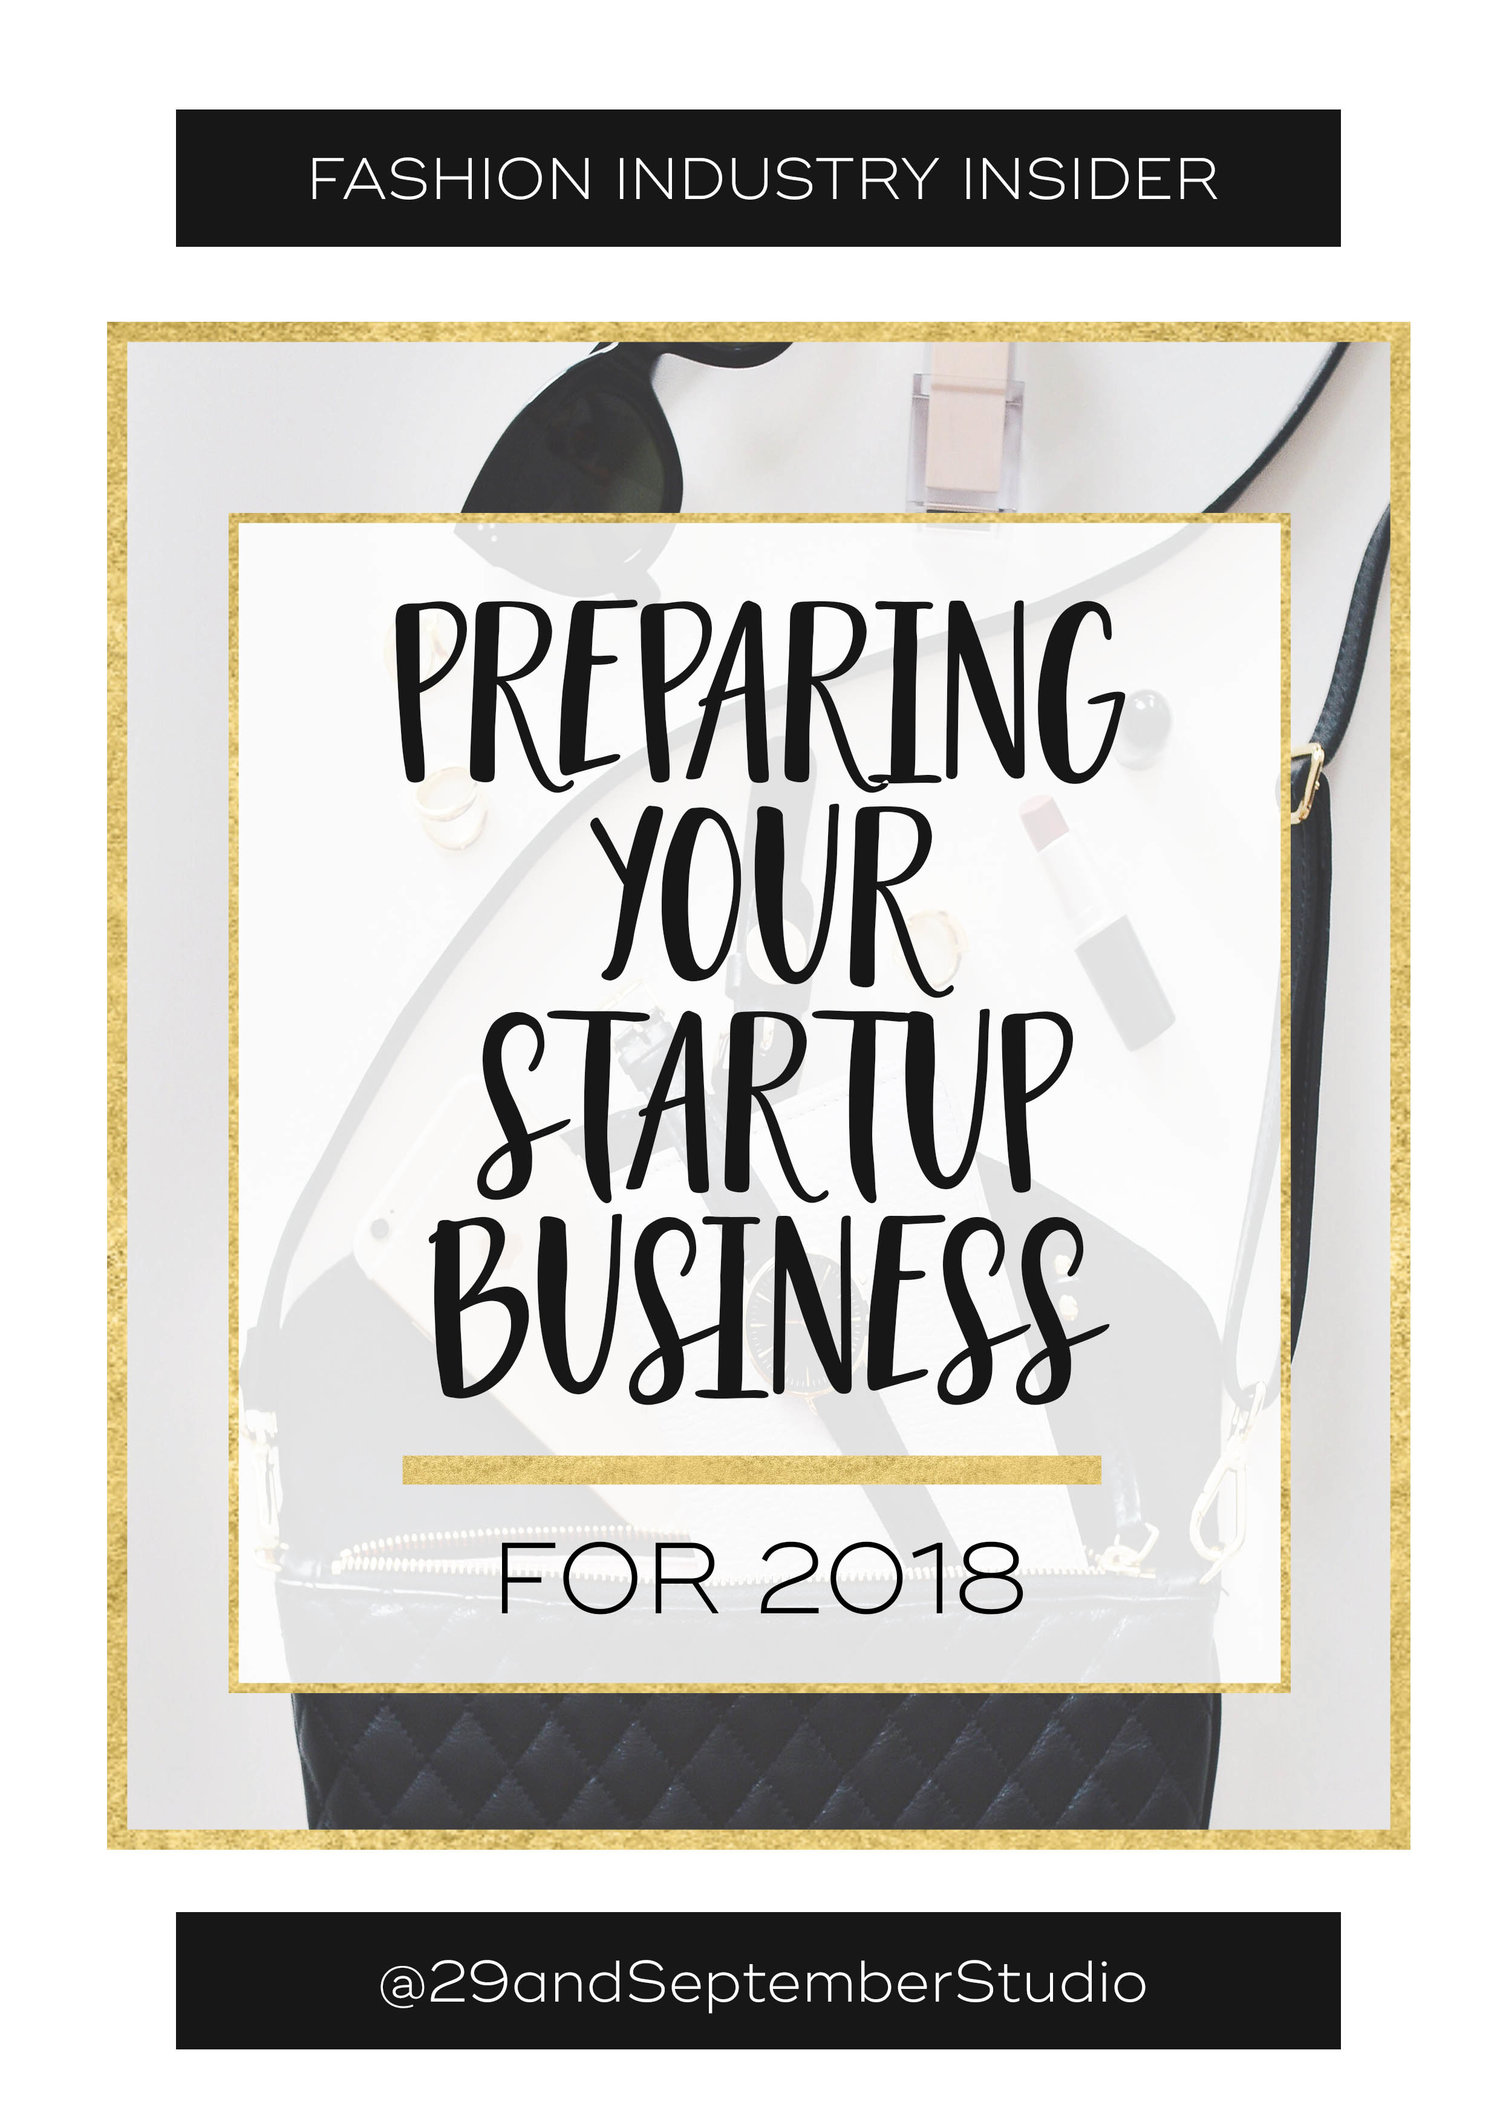 How To Prepare To Start A Fashion Business In 2018 The Fashion Business Coach